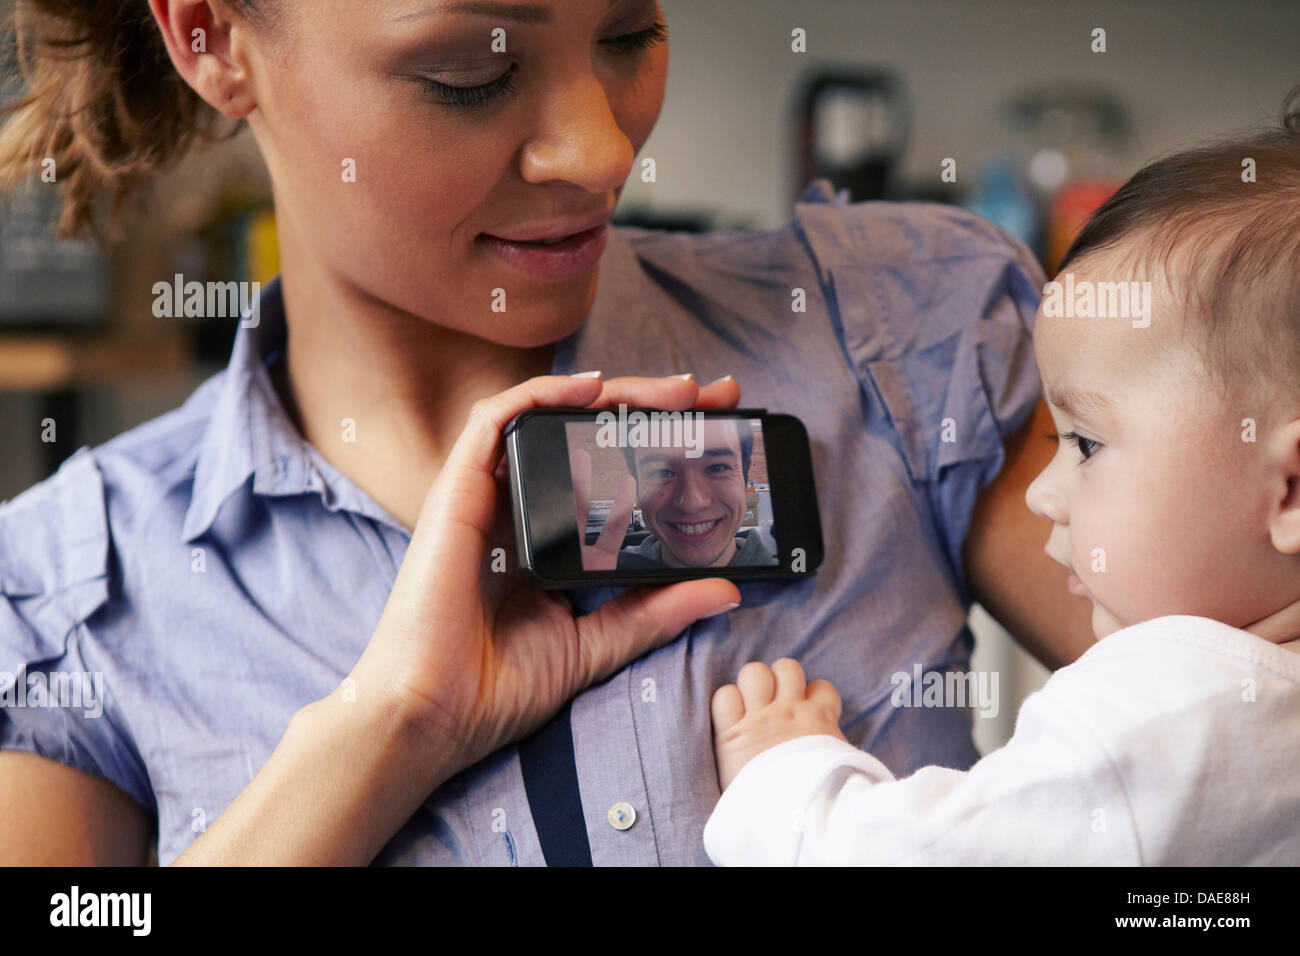 Baby girl watching father on video call, mother holding smartphone - Stock Image